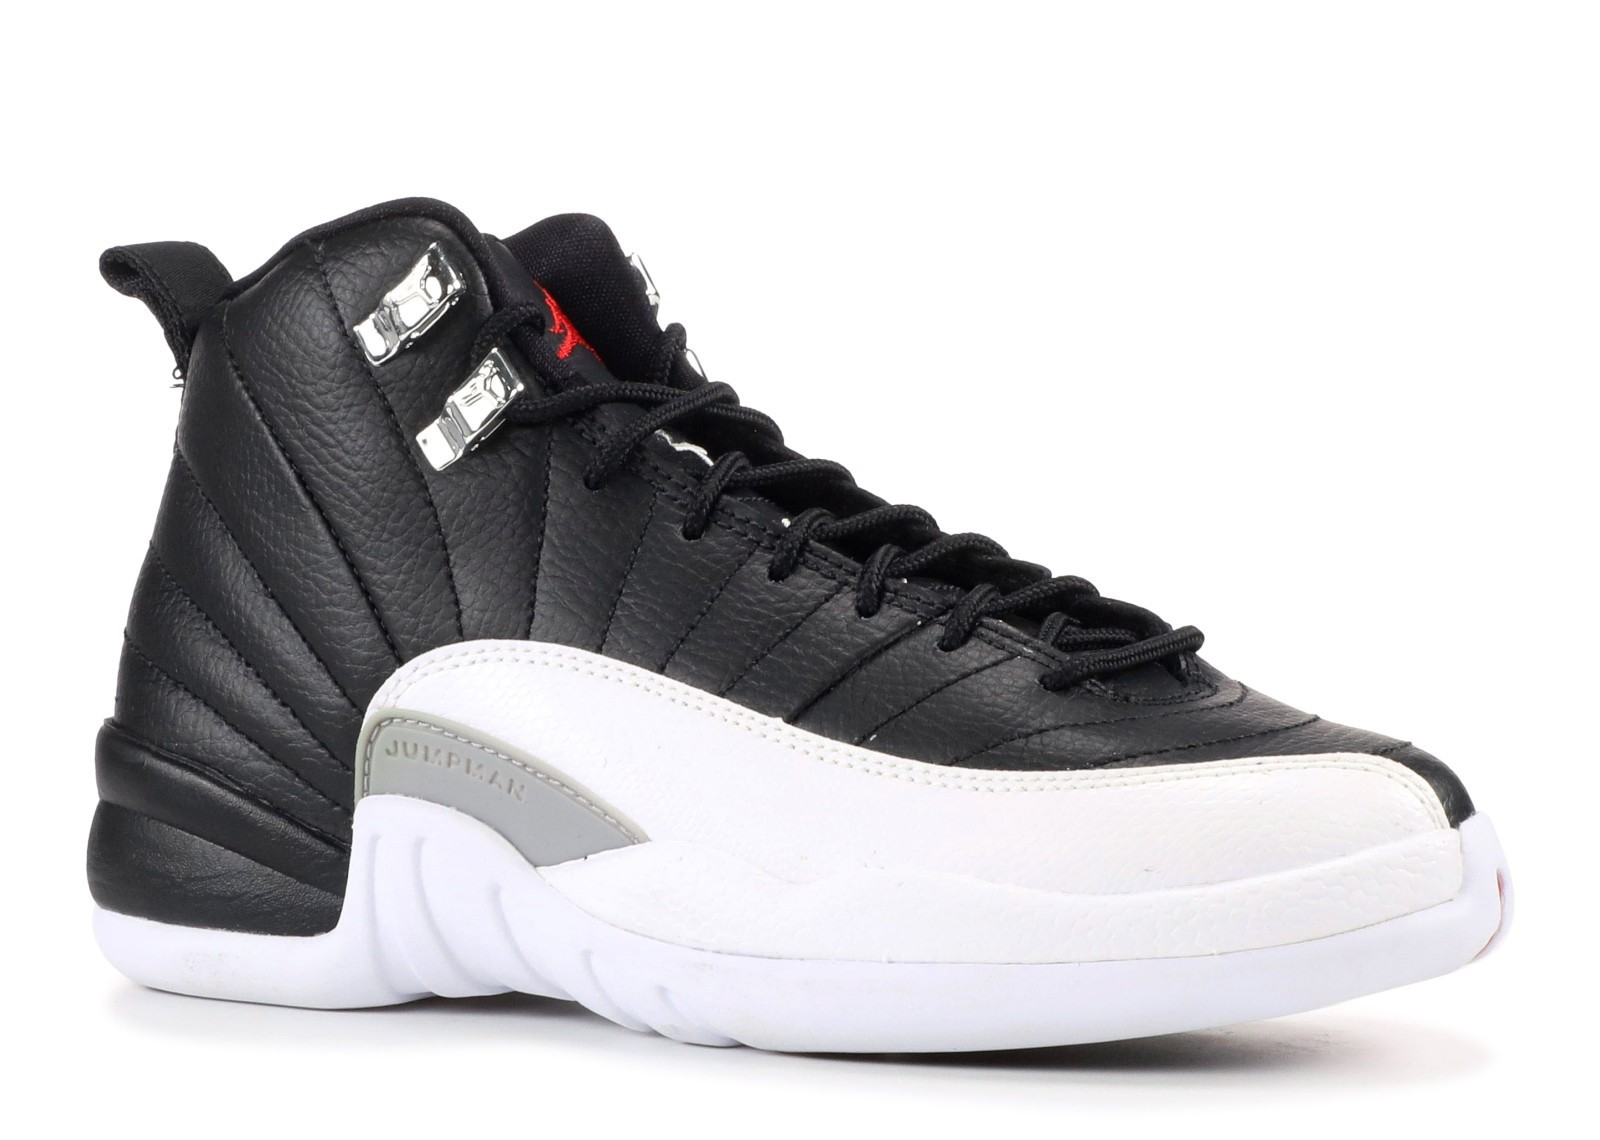 Offert Air Jordan 12 Retro (Gs) 'Playoff 2012 Release' Noir Blanc (153265-001)